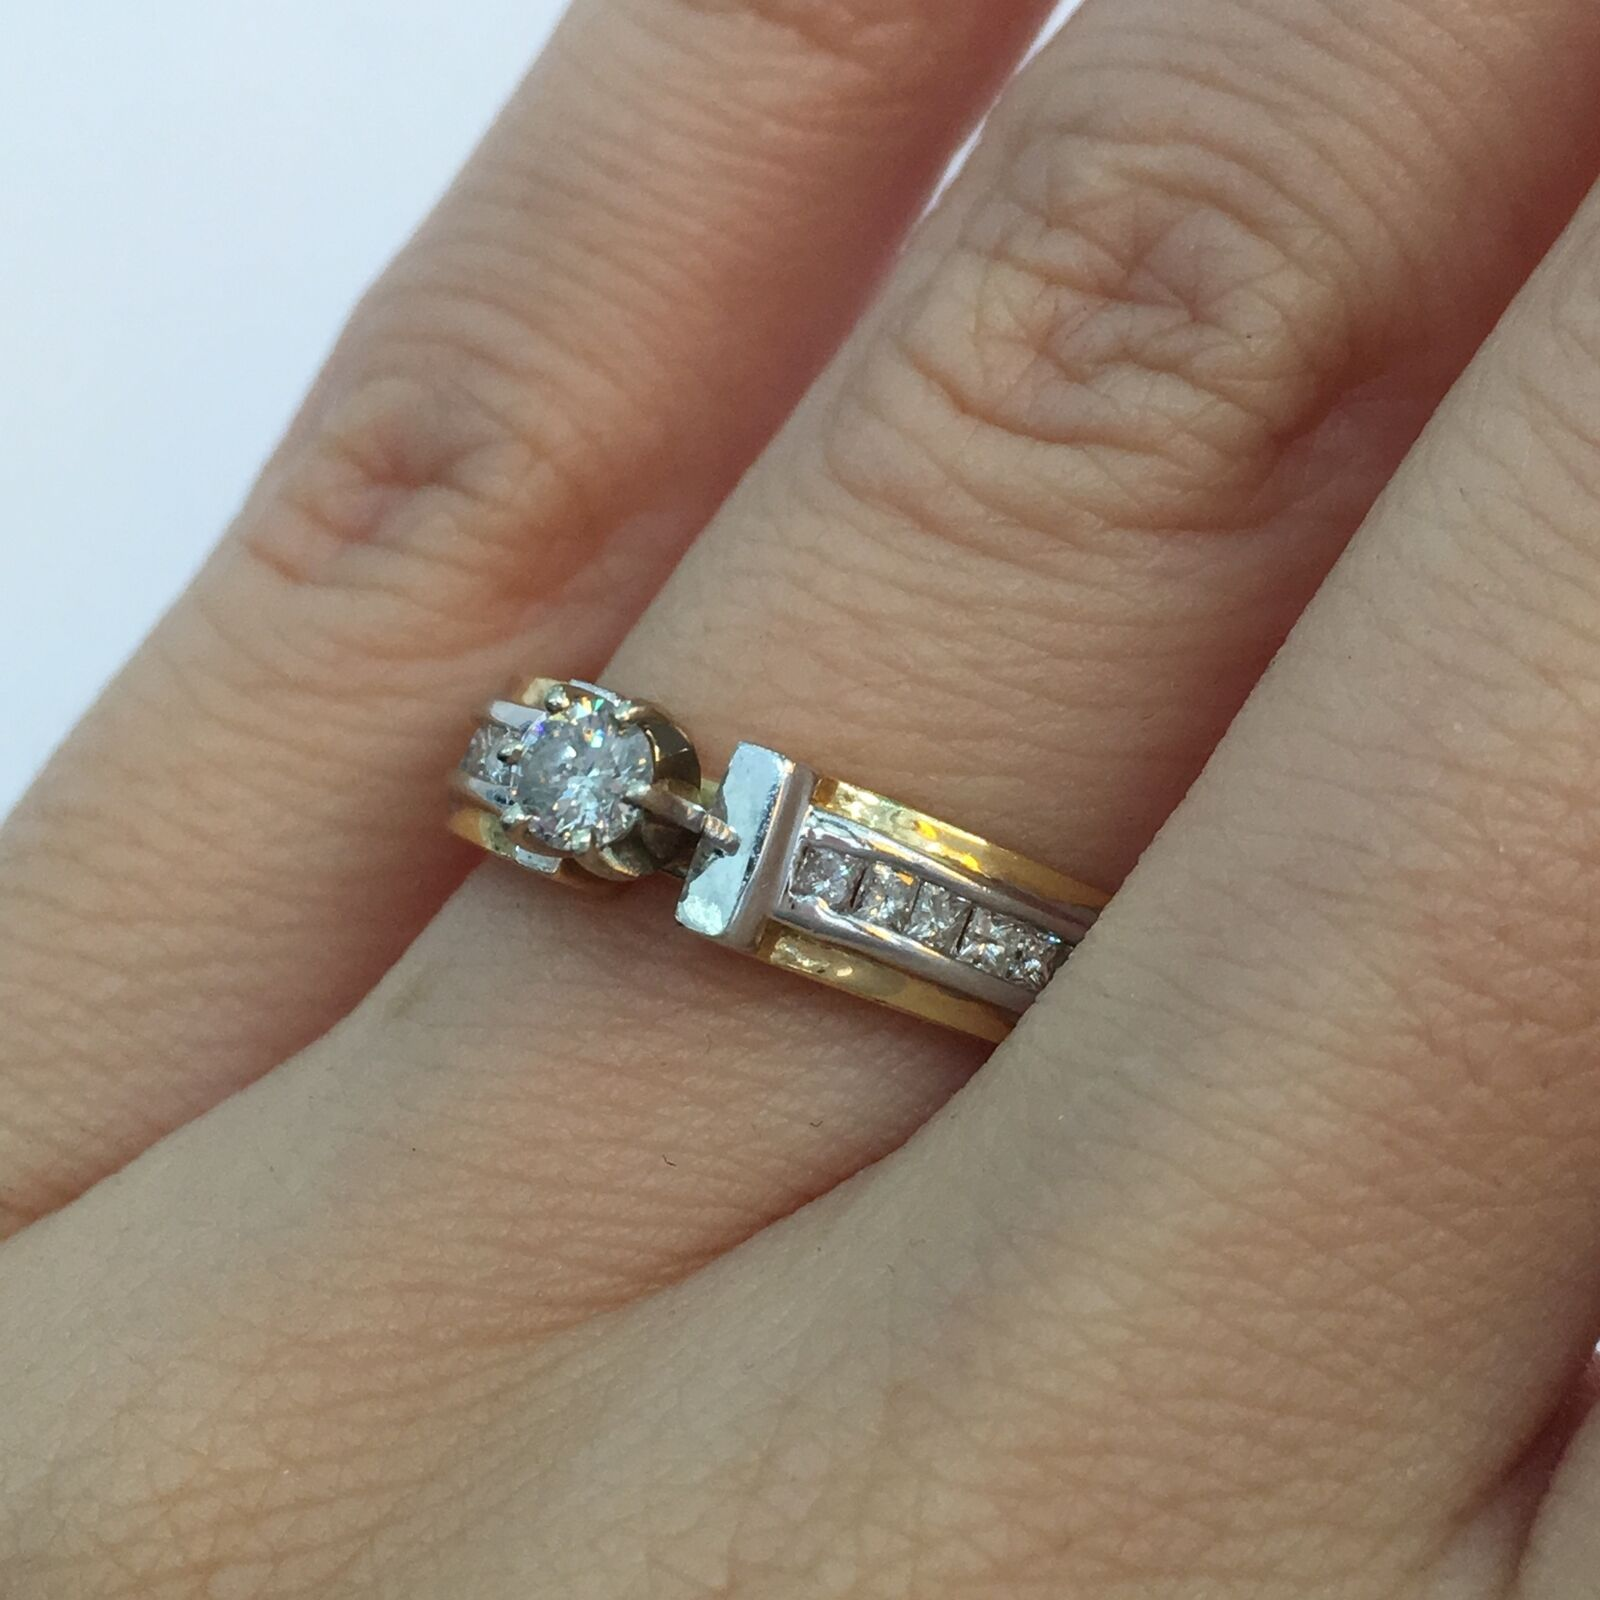 0.55 Ct Round Brilliant Cut Diamond Engagement Ring in 14K gold H SI2